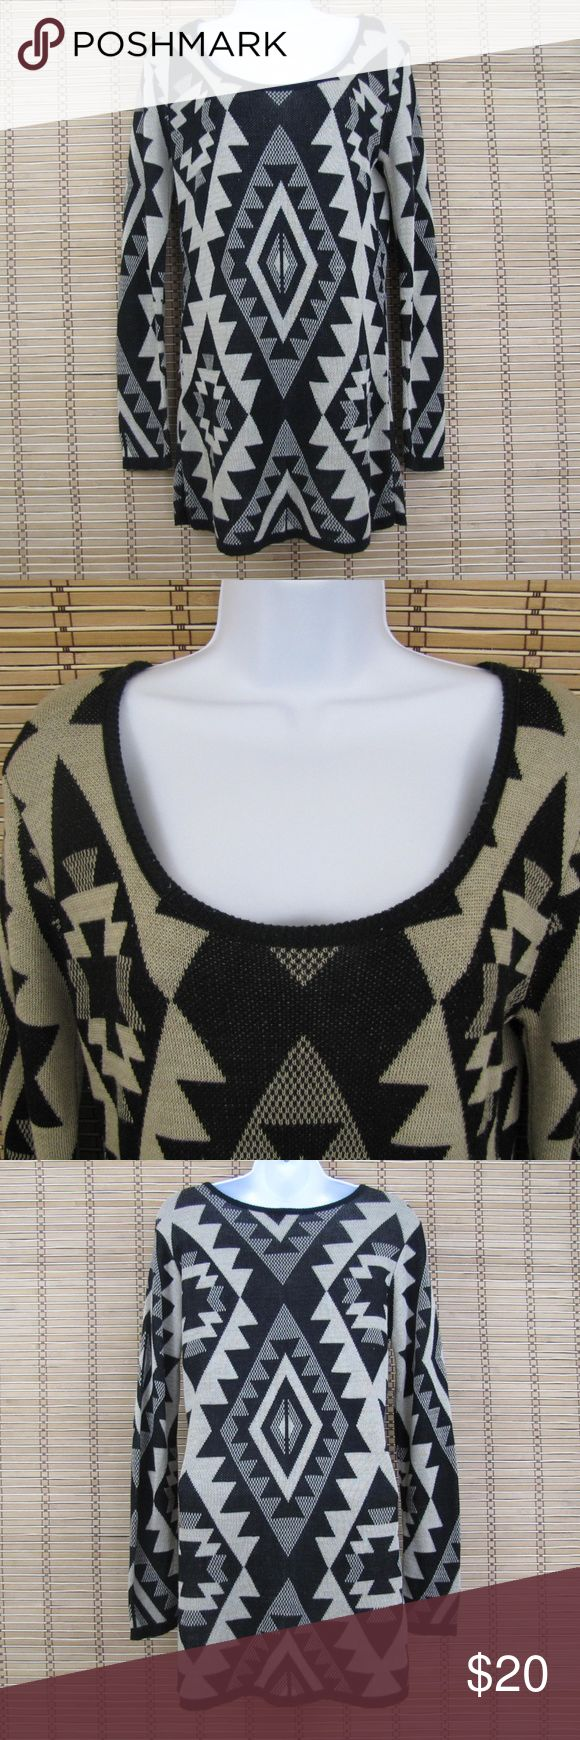 "Body Central Aztec Sweater Inventory # D099  EXCELLENT CONDITION!!!  ** No size tag tag on Top so please see measurements below for proper fit **  Pit to Pit:16.5""  Length: 27.5""  Sleeves: 24"" Body Central Sweaters Crew & Scoop Necks"